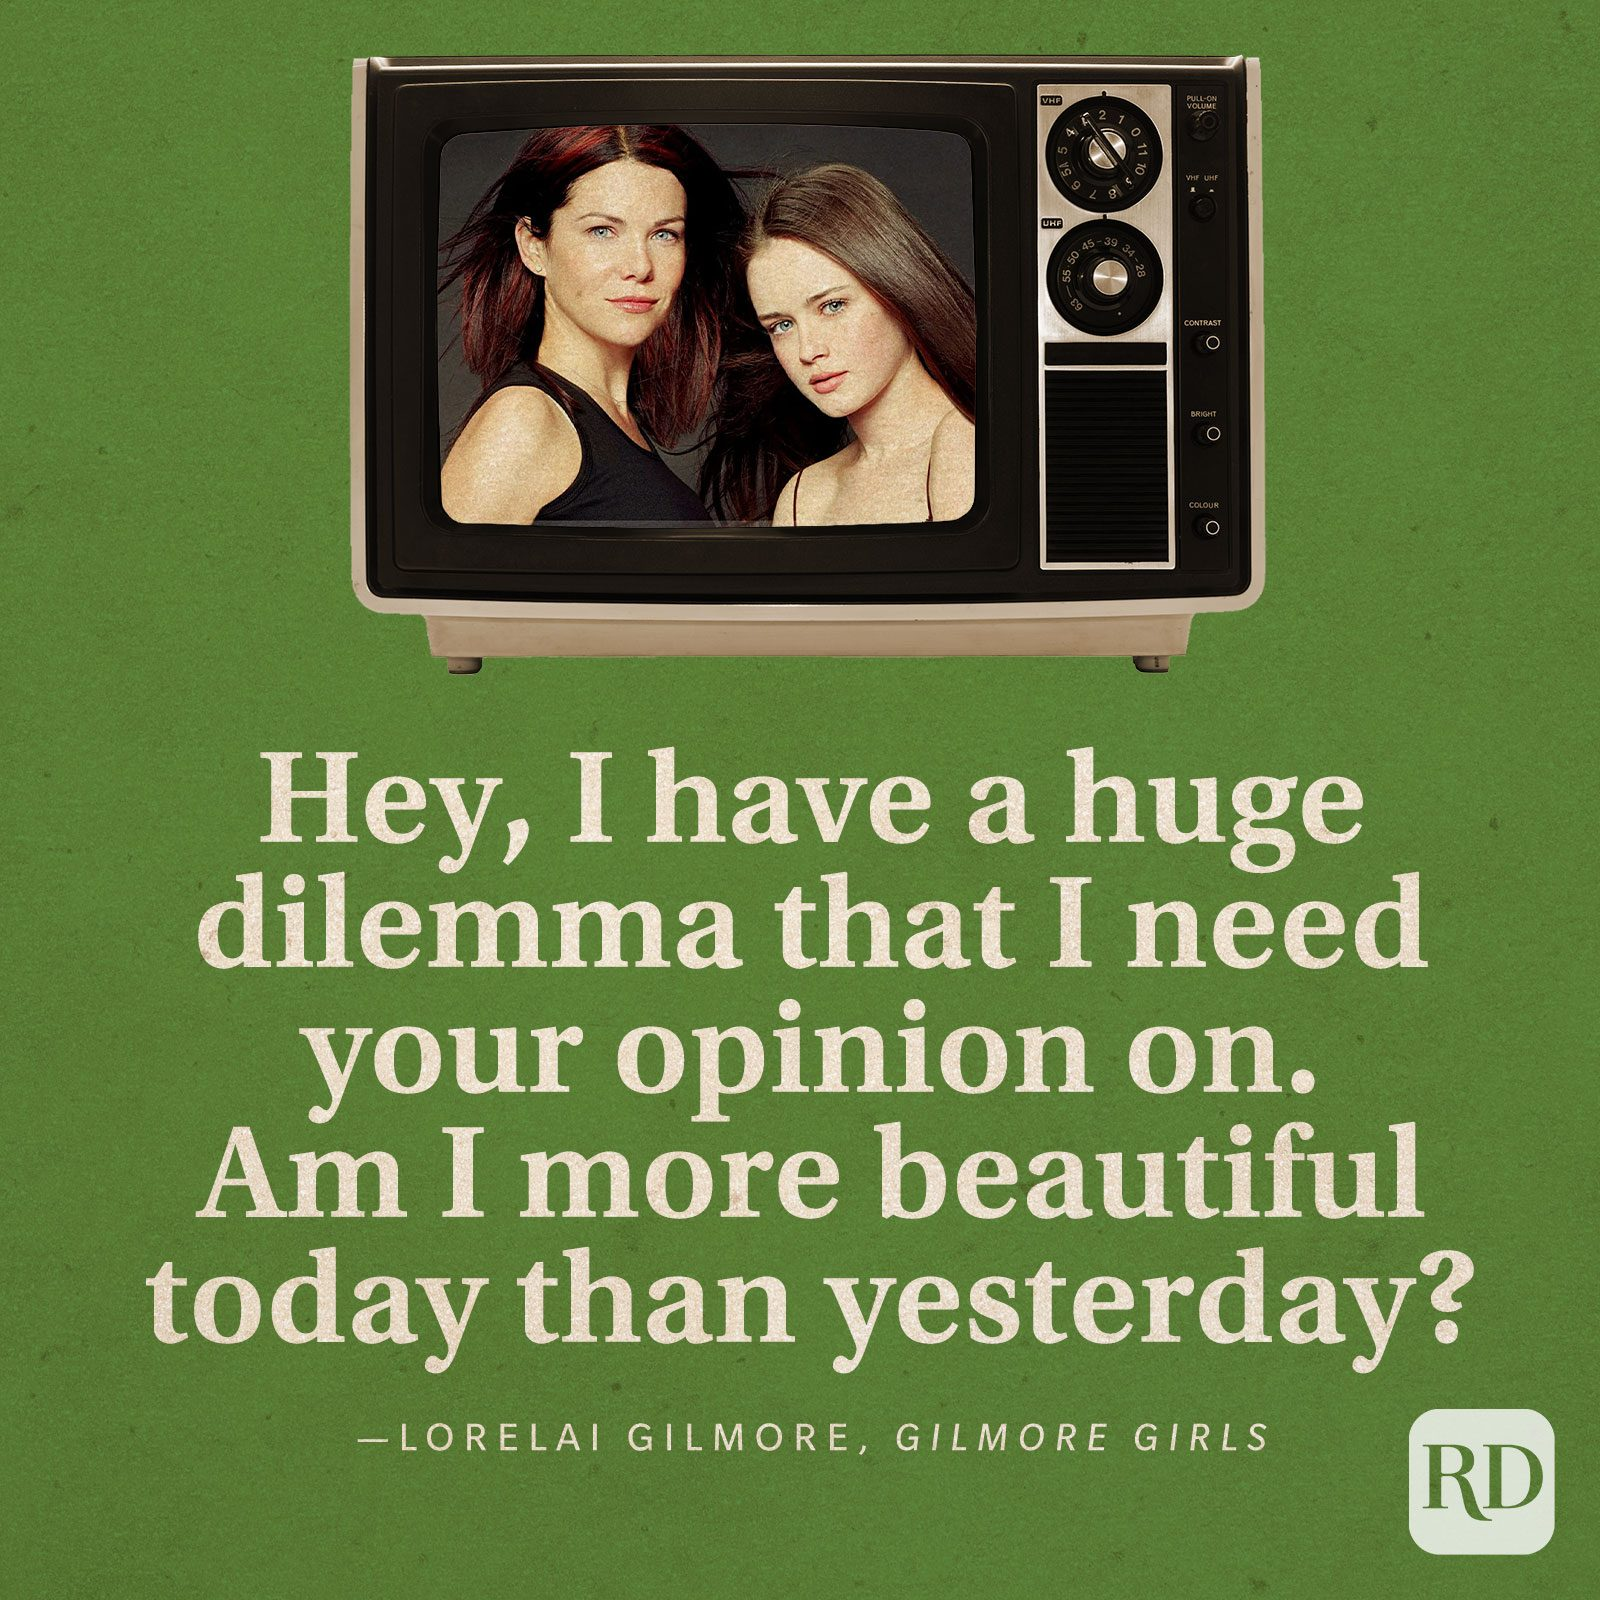 """""""Hey, I have a huge dilemma that I need your opinion on. Am I more beautiful today than yesterday?"""" -Lorelai Gilmore in Gilmore Girls."""